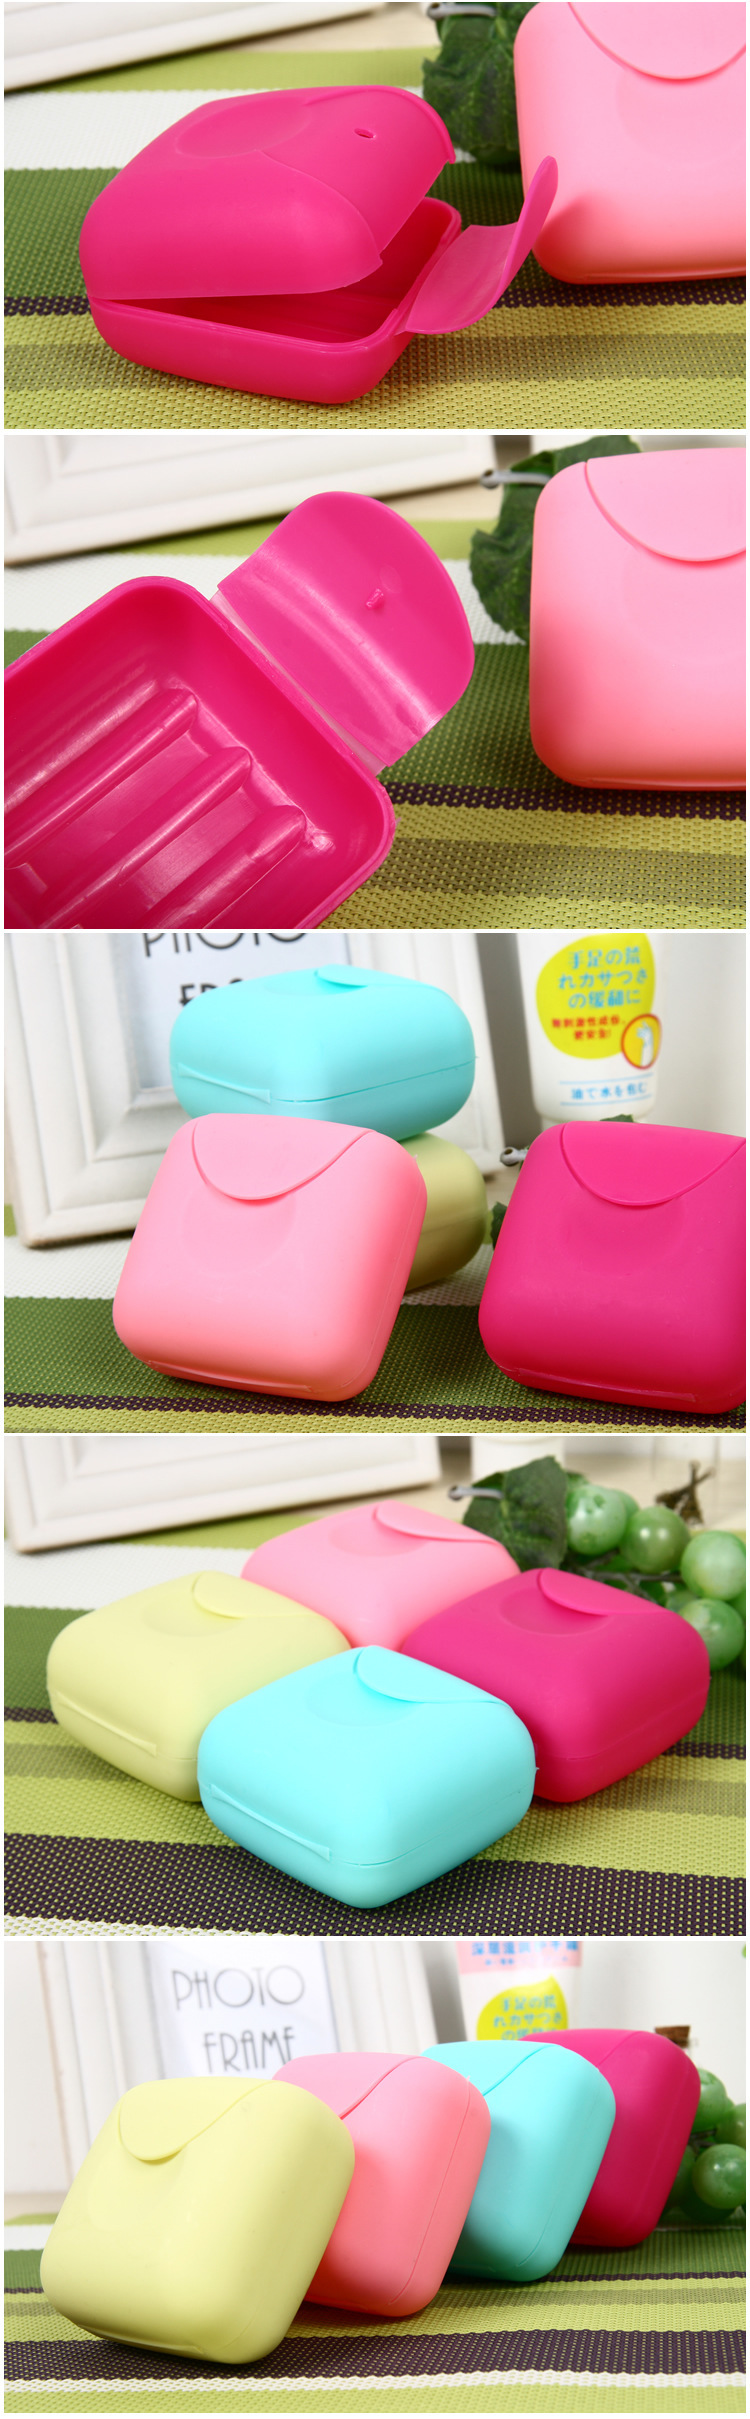 Honana BX- 927 Bathroom Soap Dish Travel Soap Box Dish Plate Holder Container Case Foaming Candy Color Soap Dish